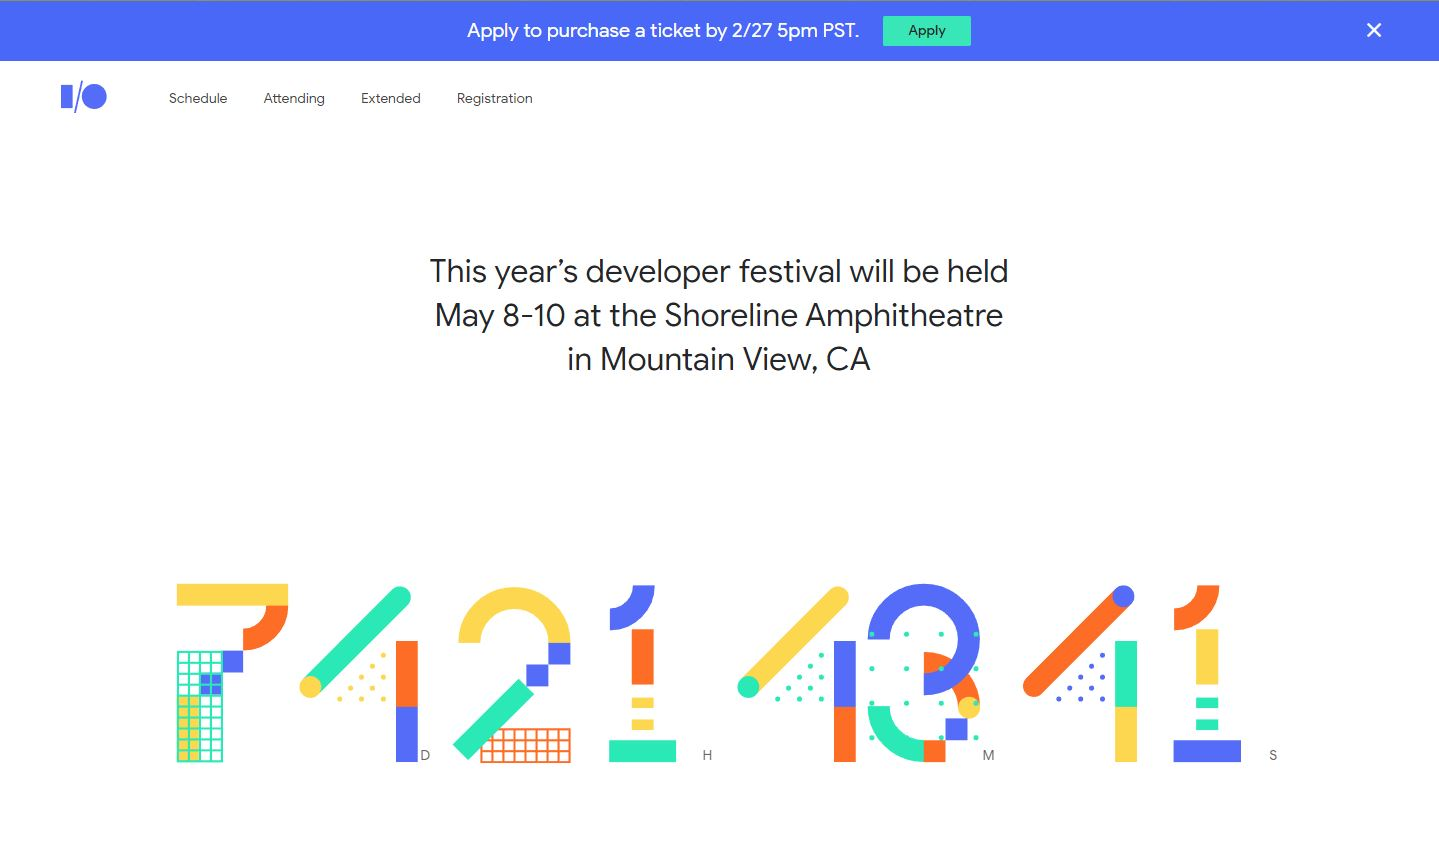 How to apply for the Google I/O 2018 lottery - 9to5Google